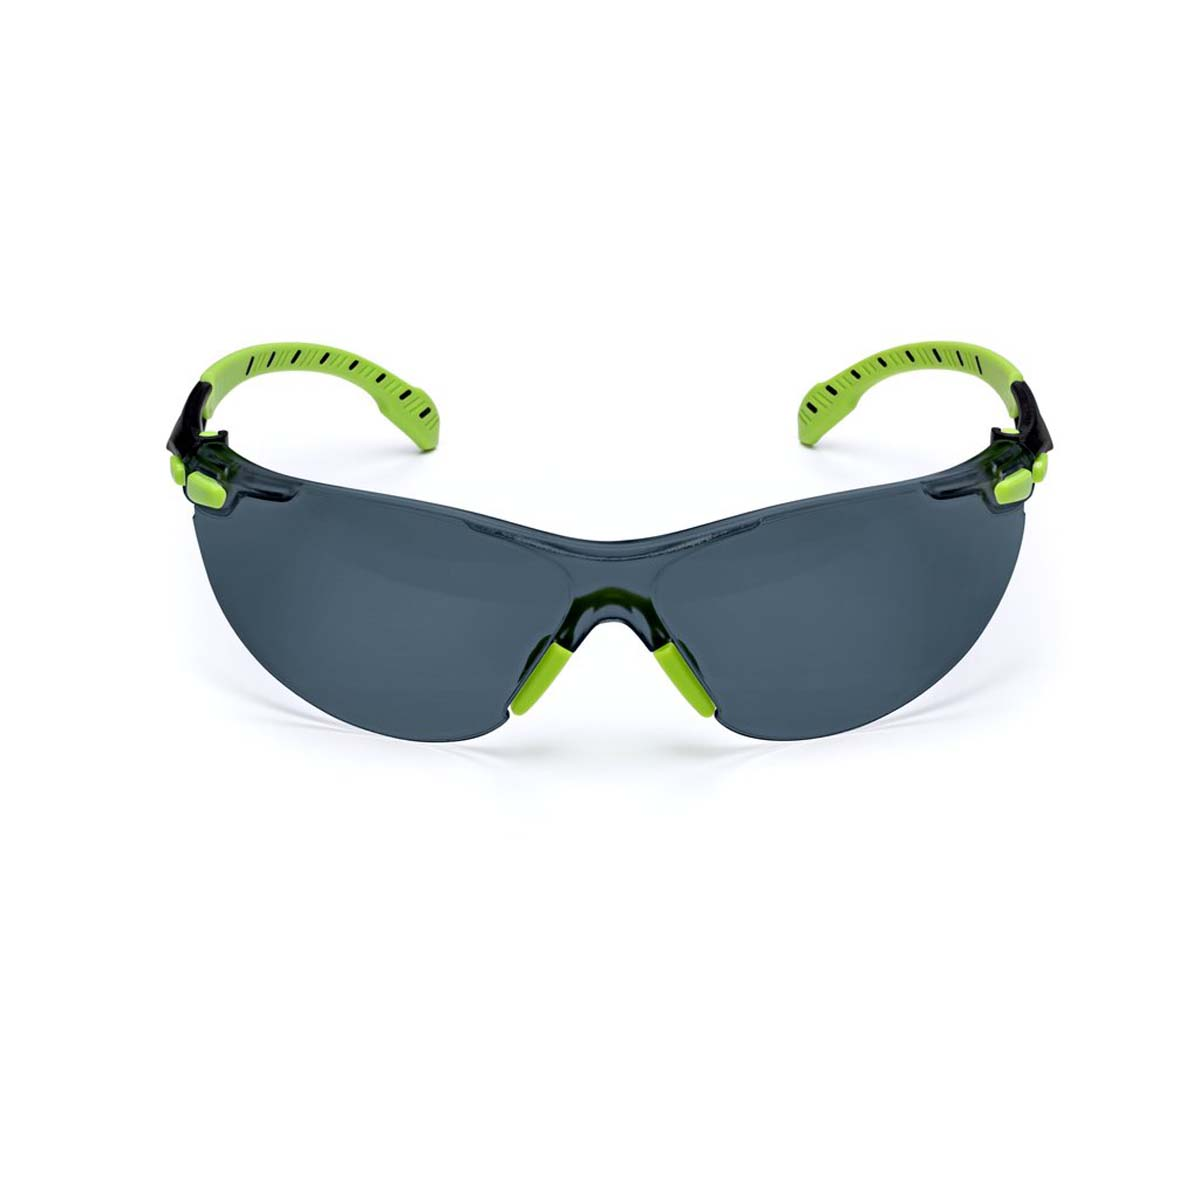 "3Mâ""¢ Solusâ""¢ 1000-Series S1202SGAF, Green/Black, Grey Scotchgardâ""¢ Anti-fog Lens"